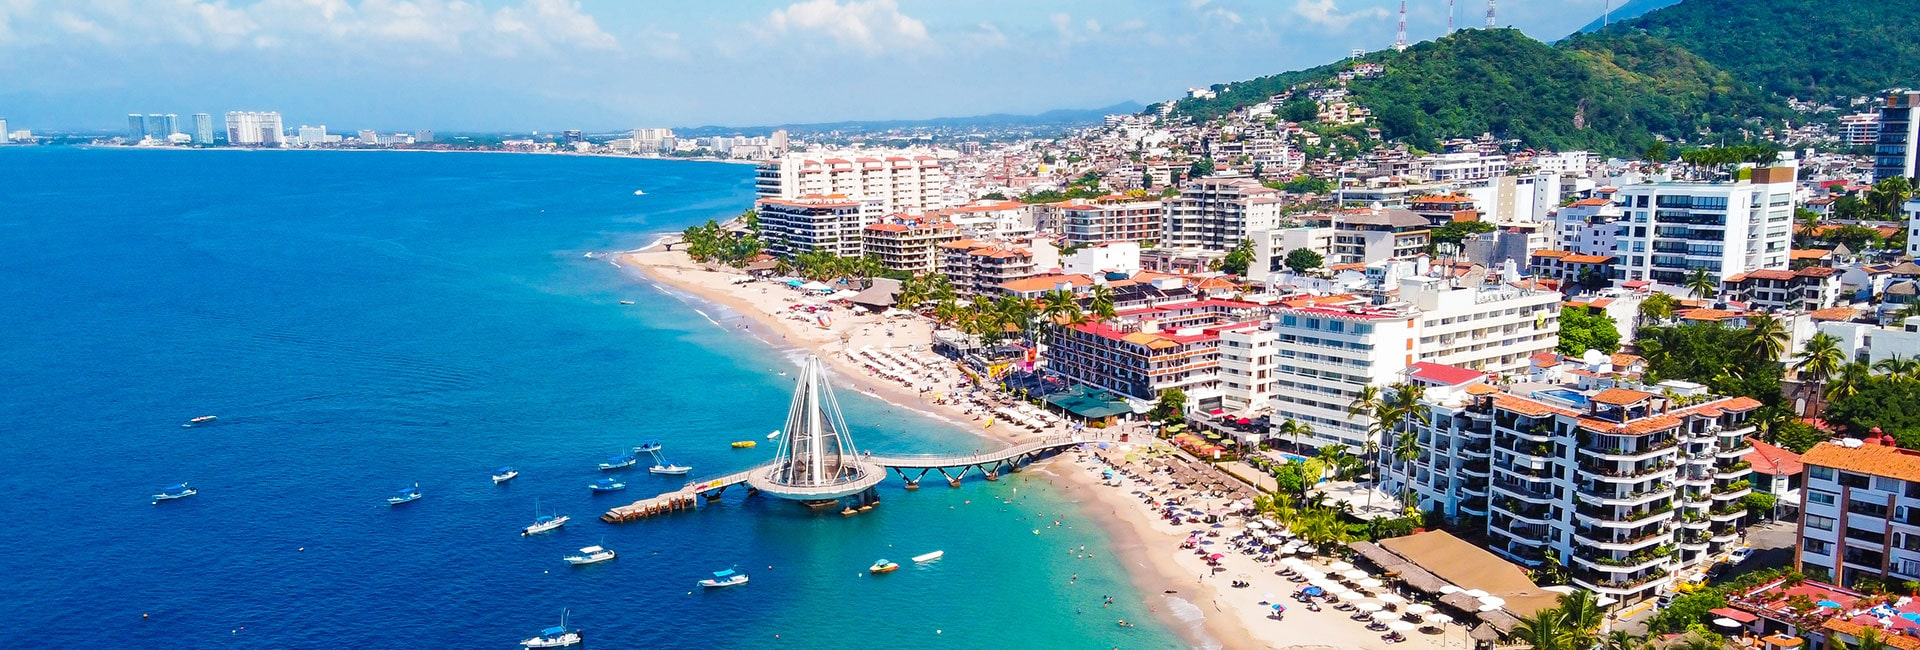 Optimizada puerto vallarta travel restrictions